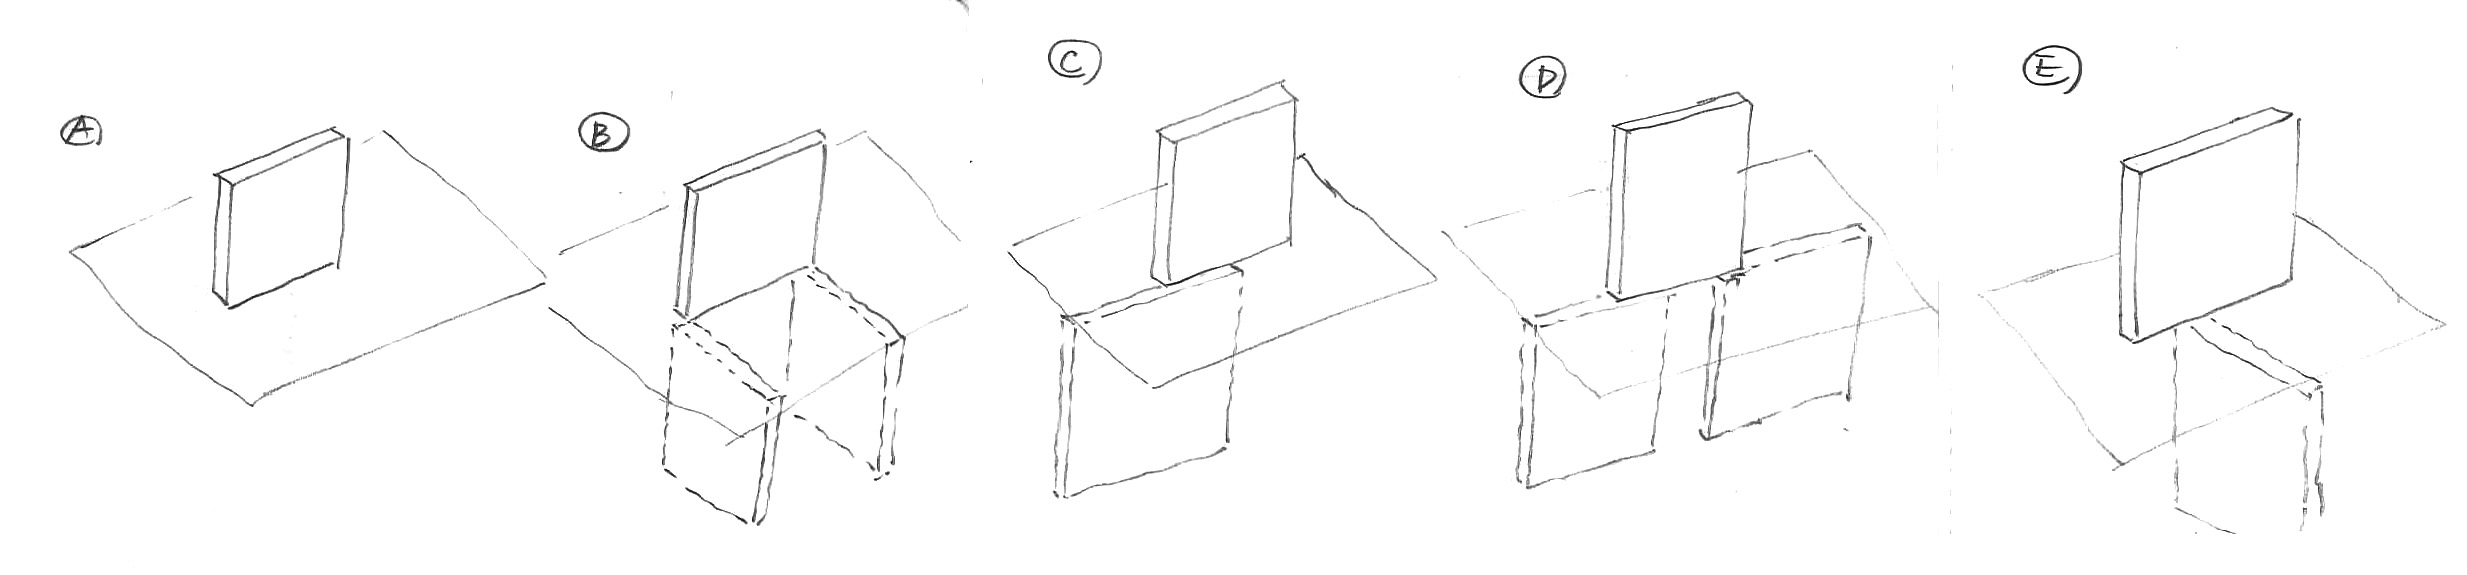 STUDY SKETCH OF STRUCTURE